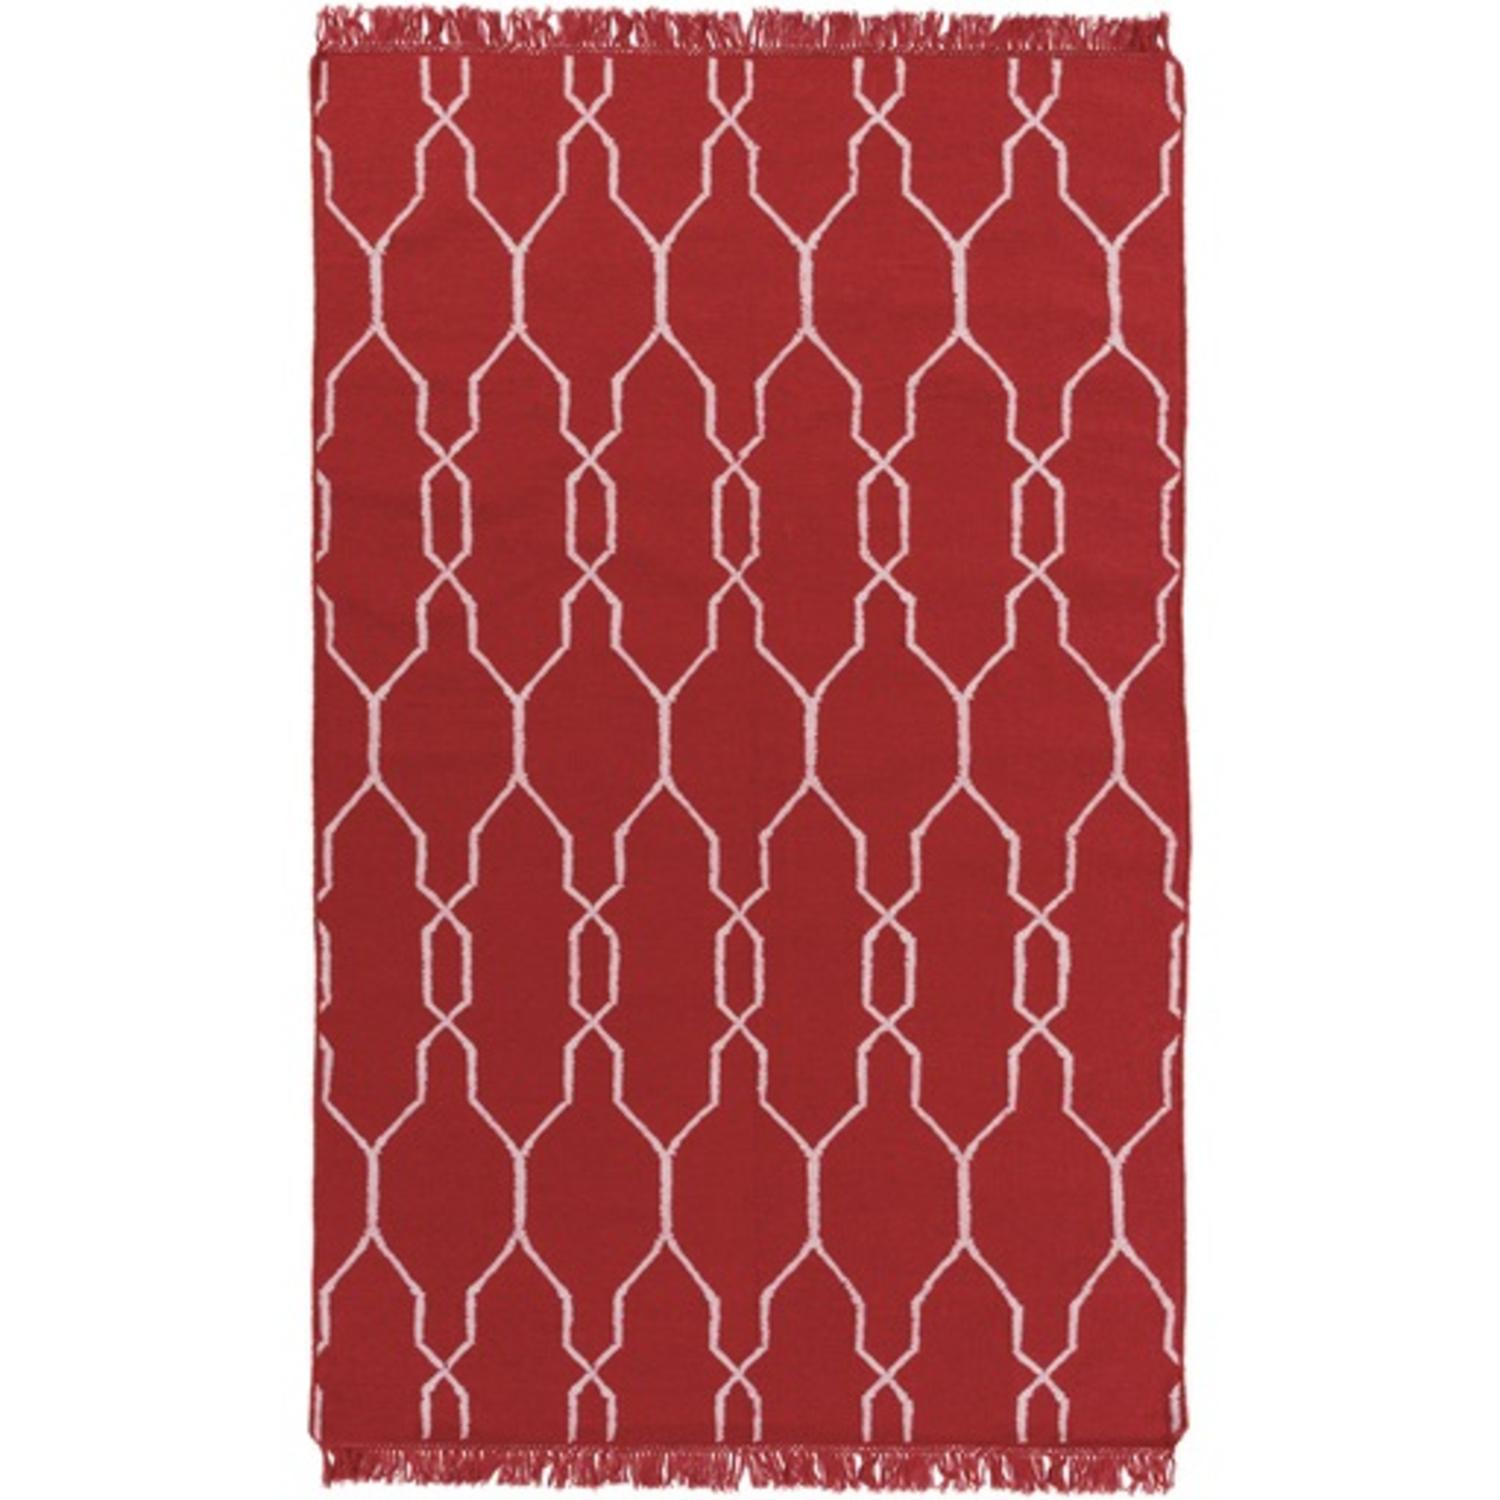 5' x 8' Moroccan Lagoon Cherry Red and Ivory Reversible Area Throw Rug